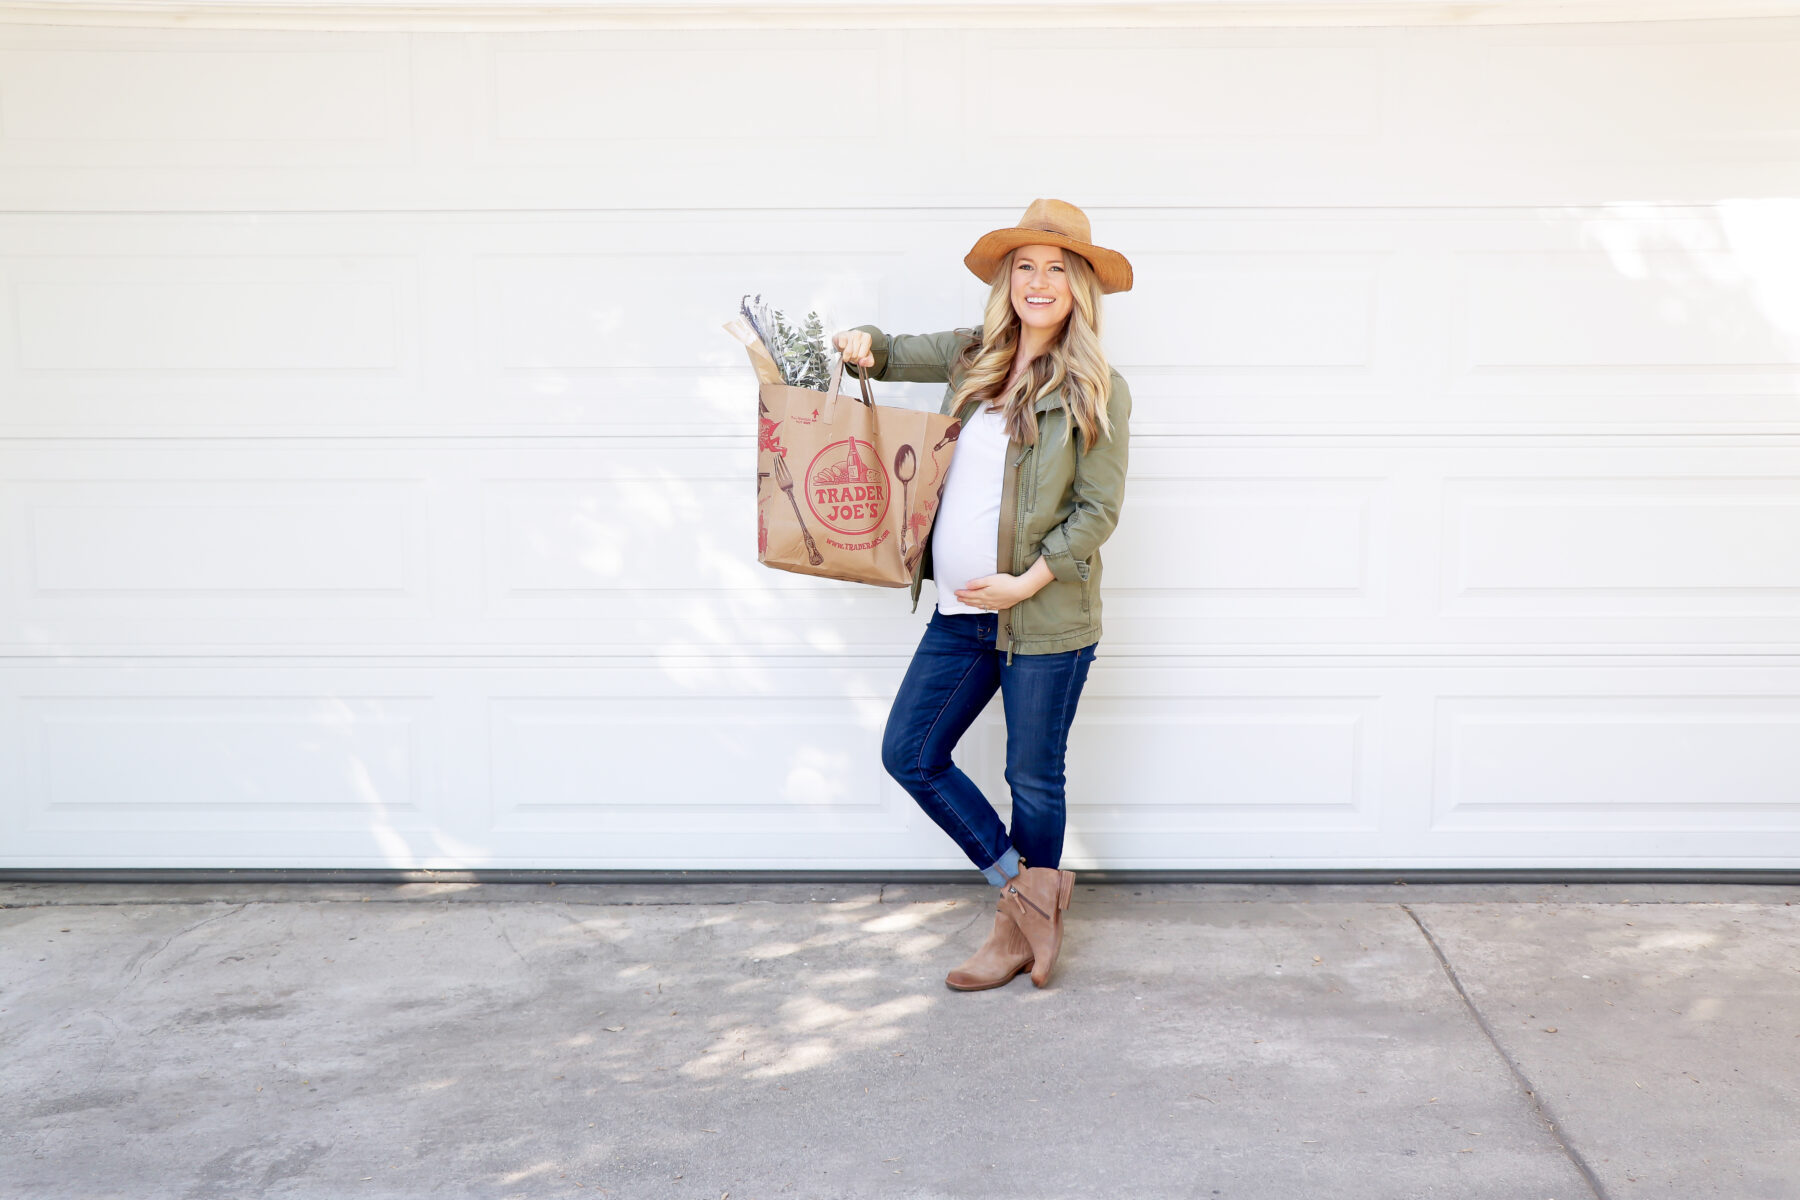 Blonde Pregnant Woman in Green Coat, White Shirt, Denim Jeans, Tan Boots and Straw Hat holding Trader Joes Grocery Bag in front of White Garage Door